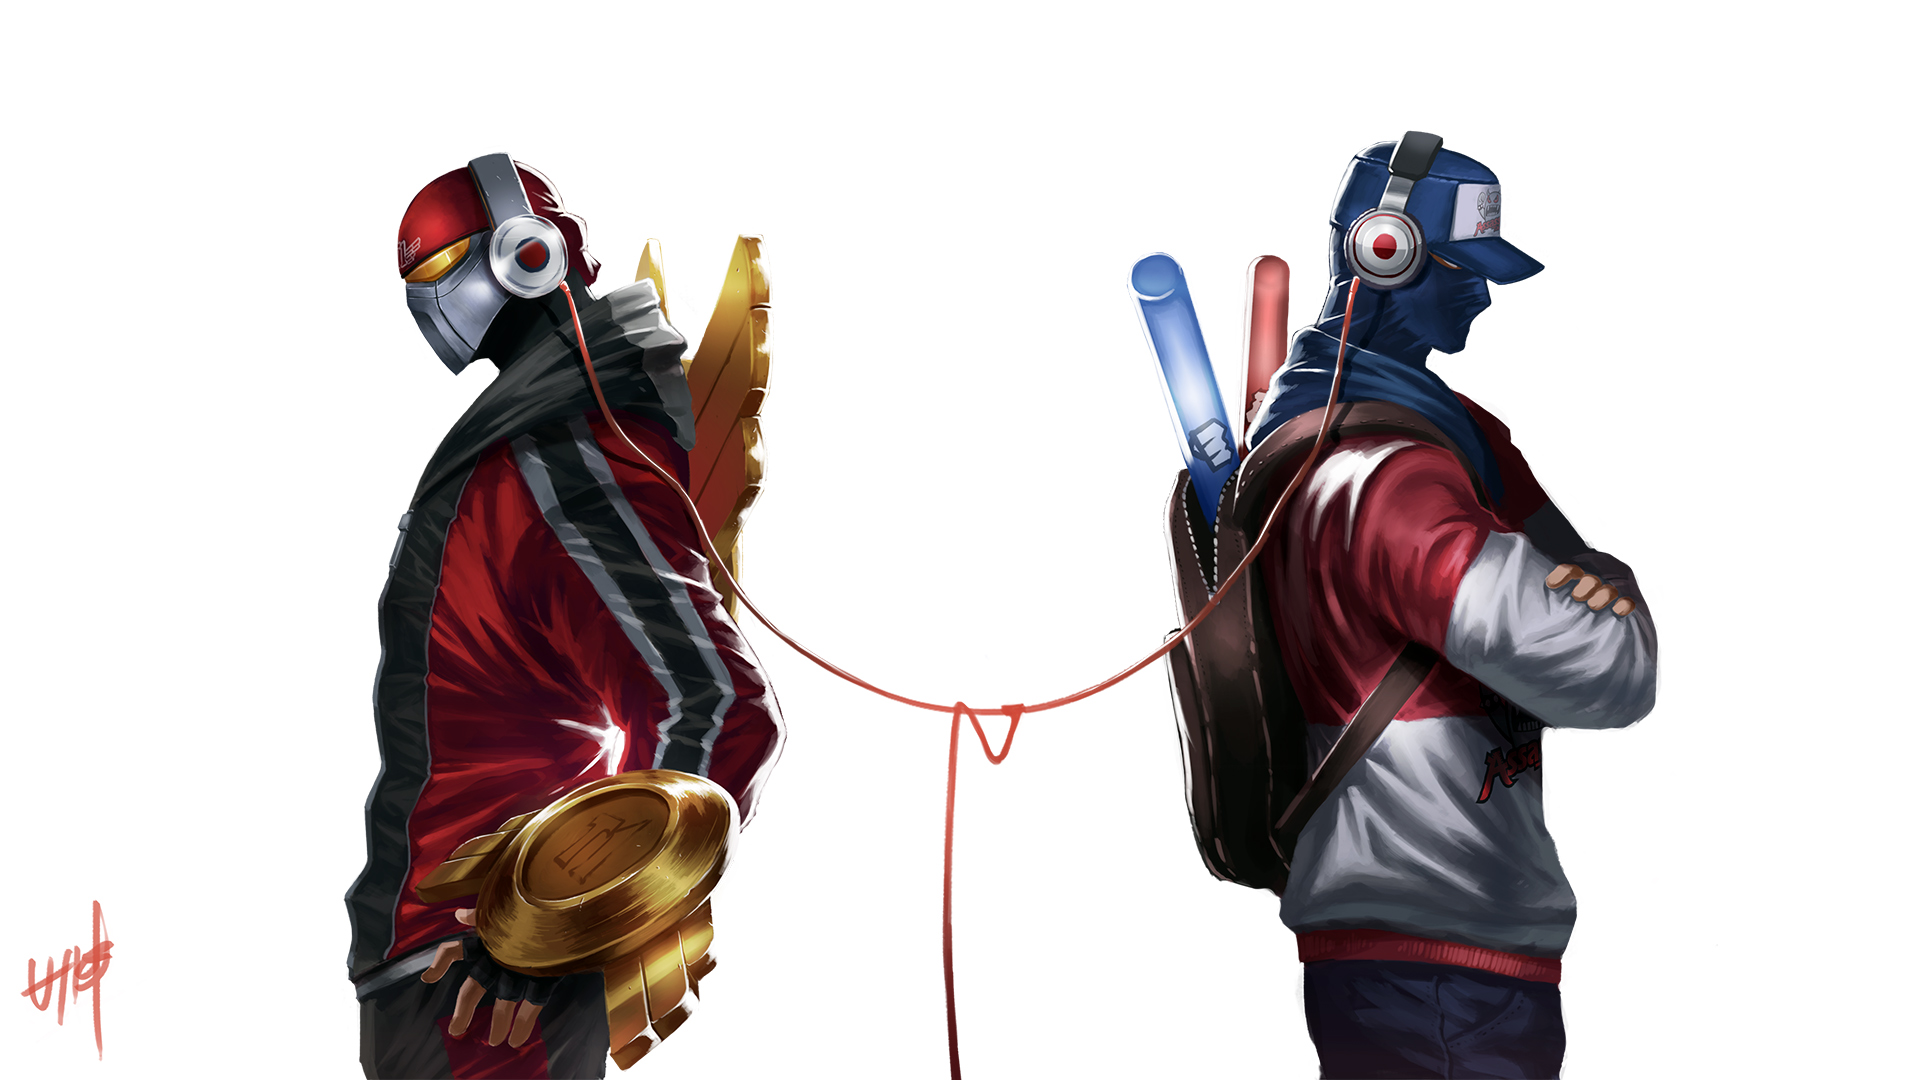 skt t1 zed and tpa shen with headphone skin art